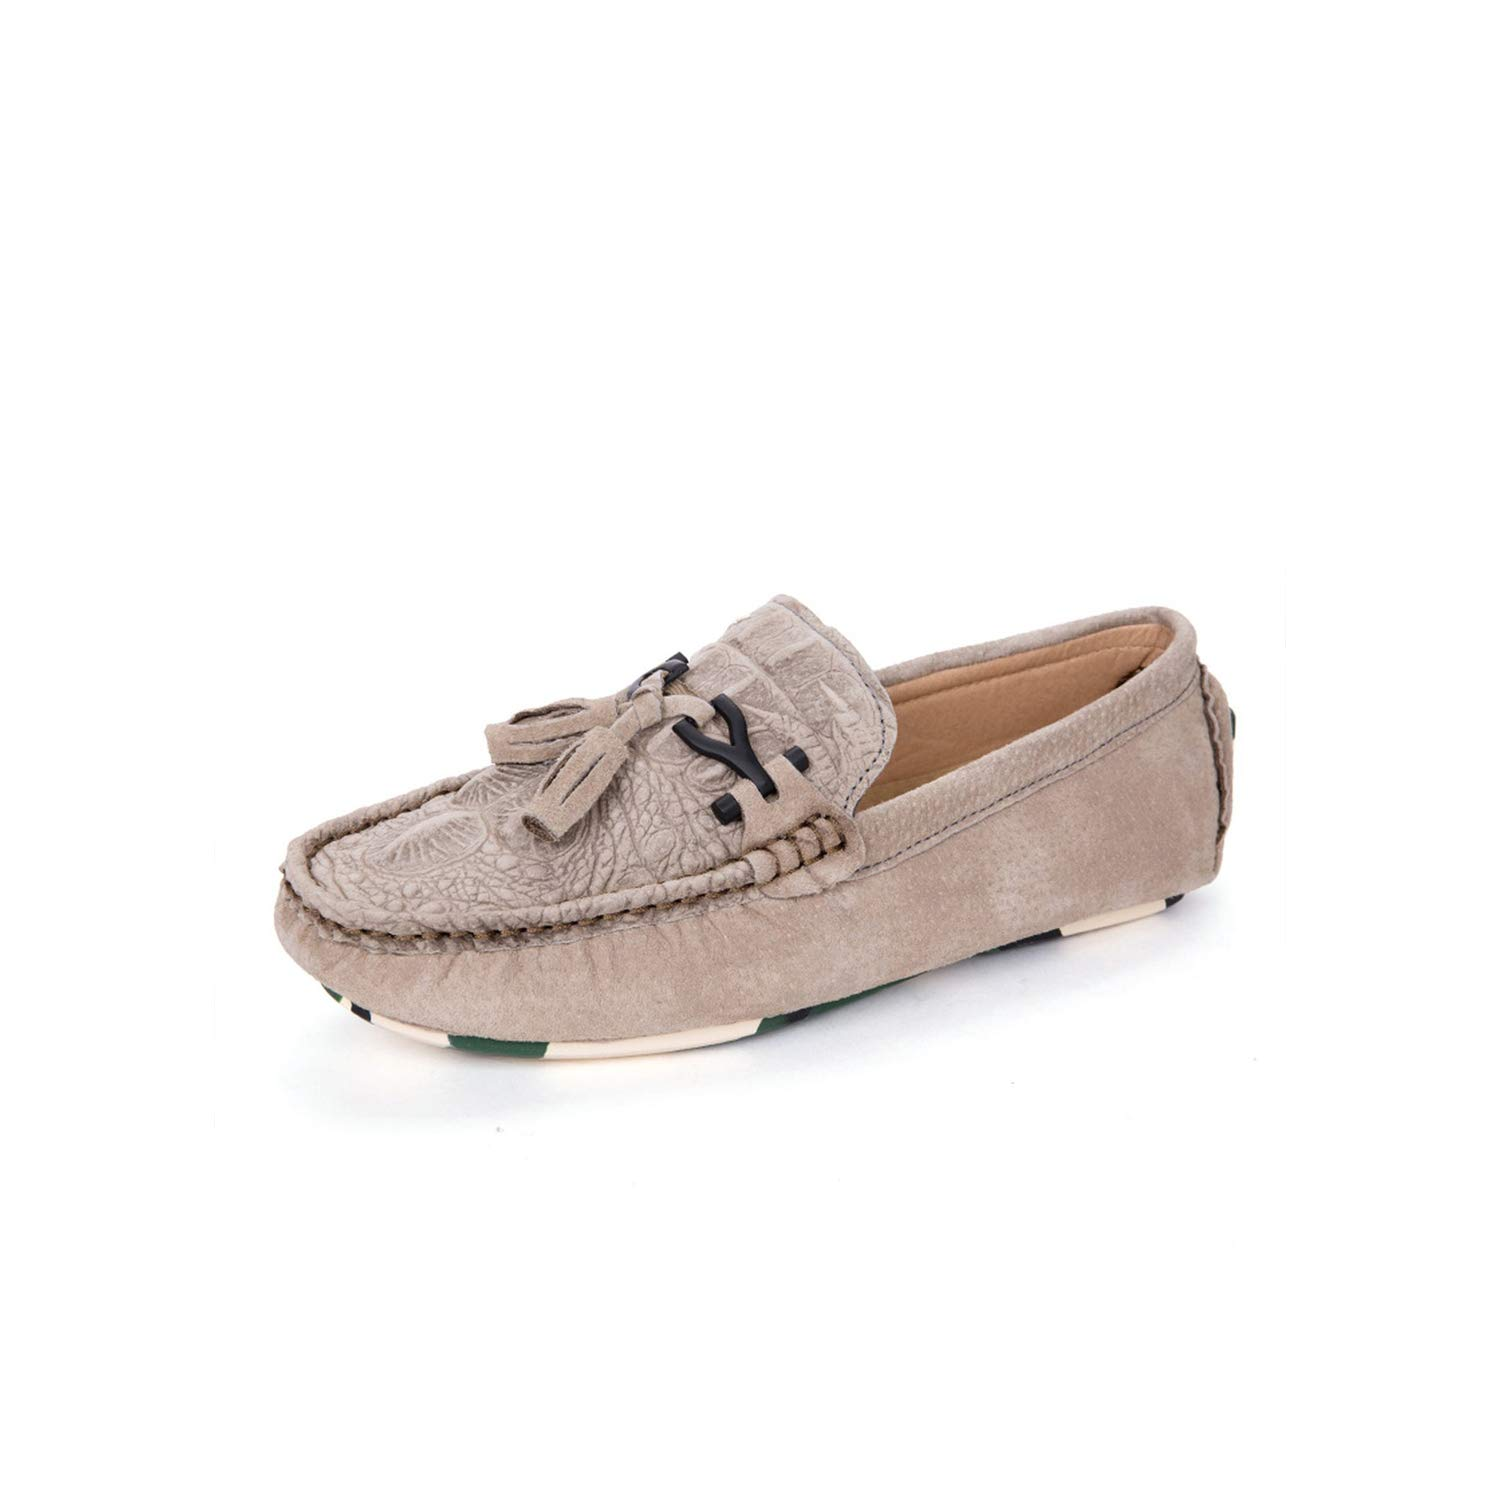 Khaki and Crocodile Pattern Peas shoes Men's Leather of The Wild Casual Leather shoes